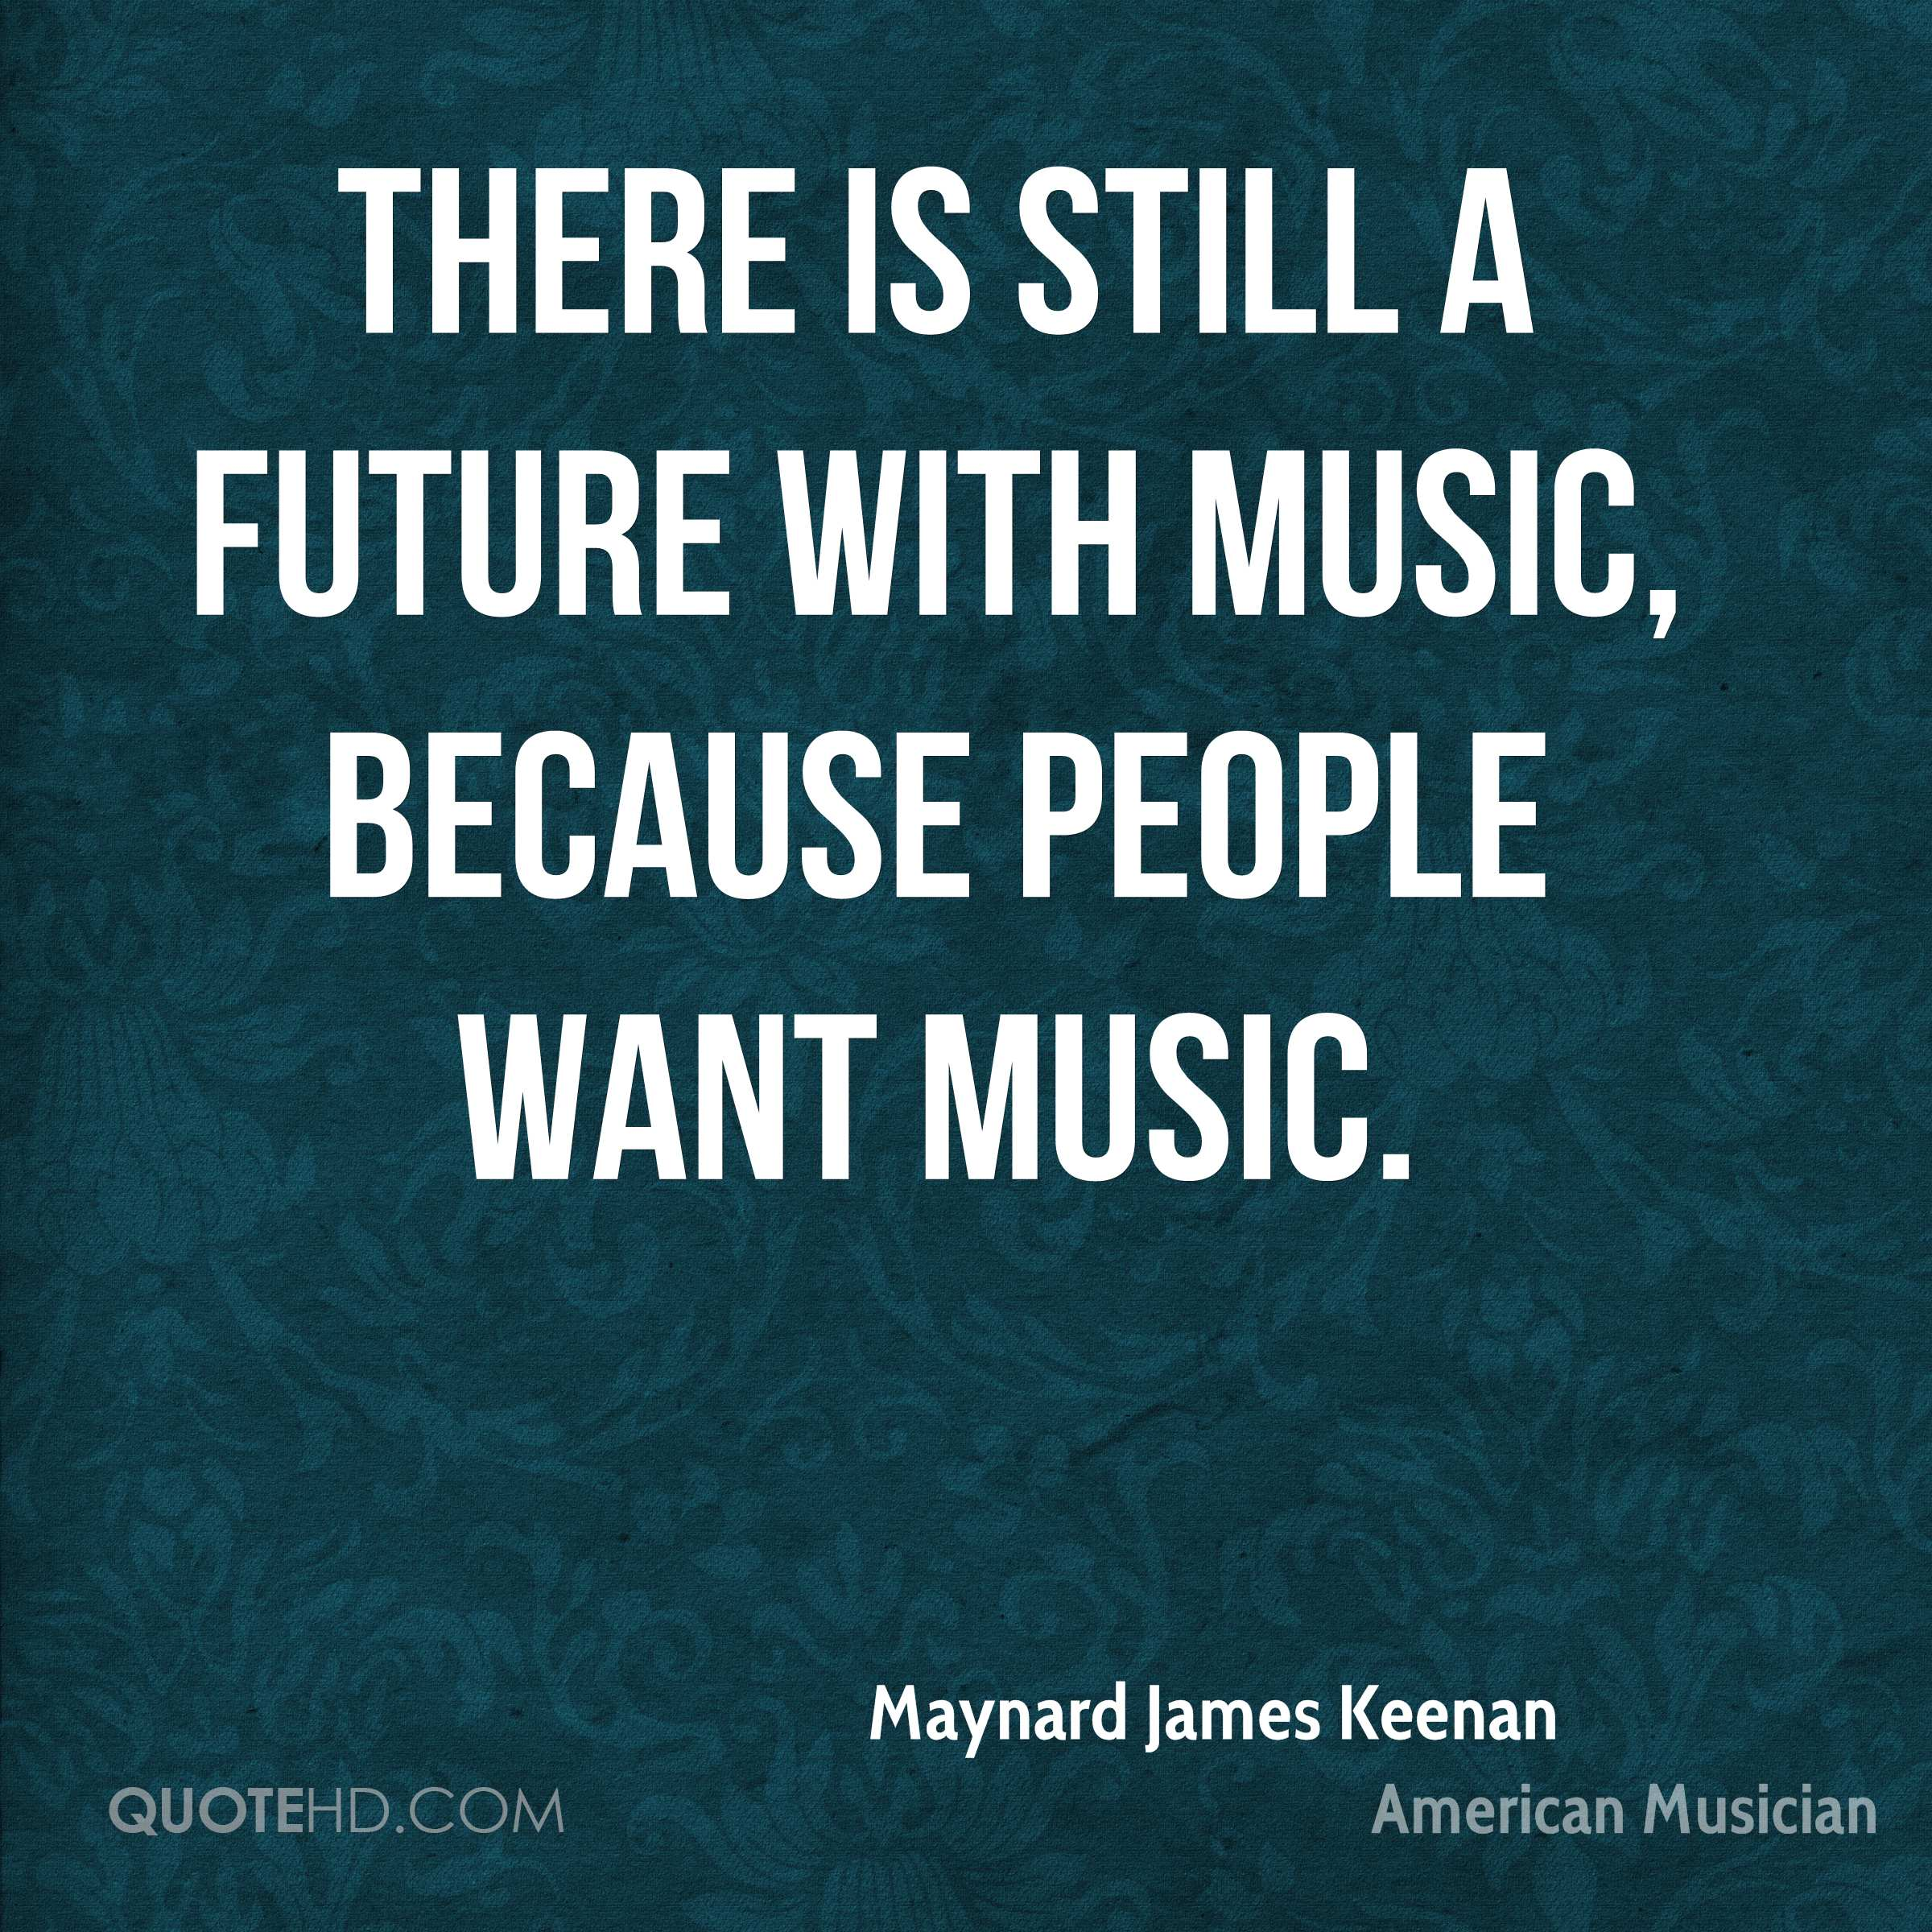 There is still a future with music, because people want music.